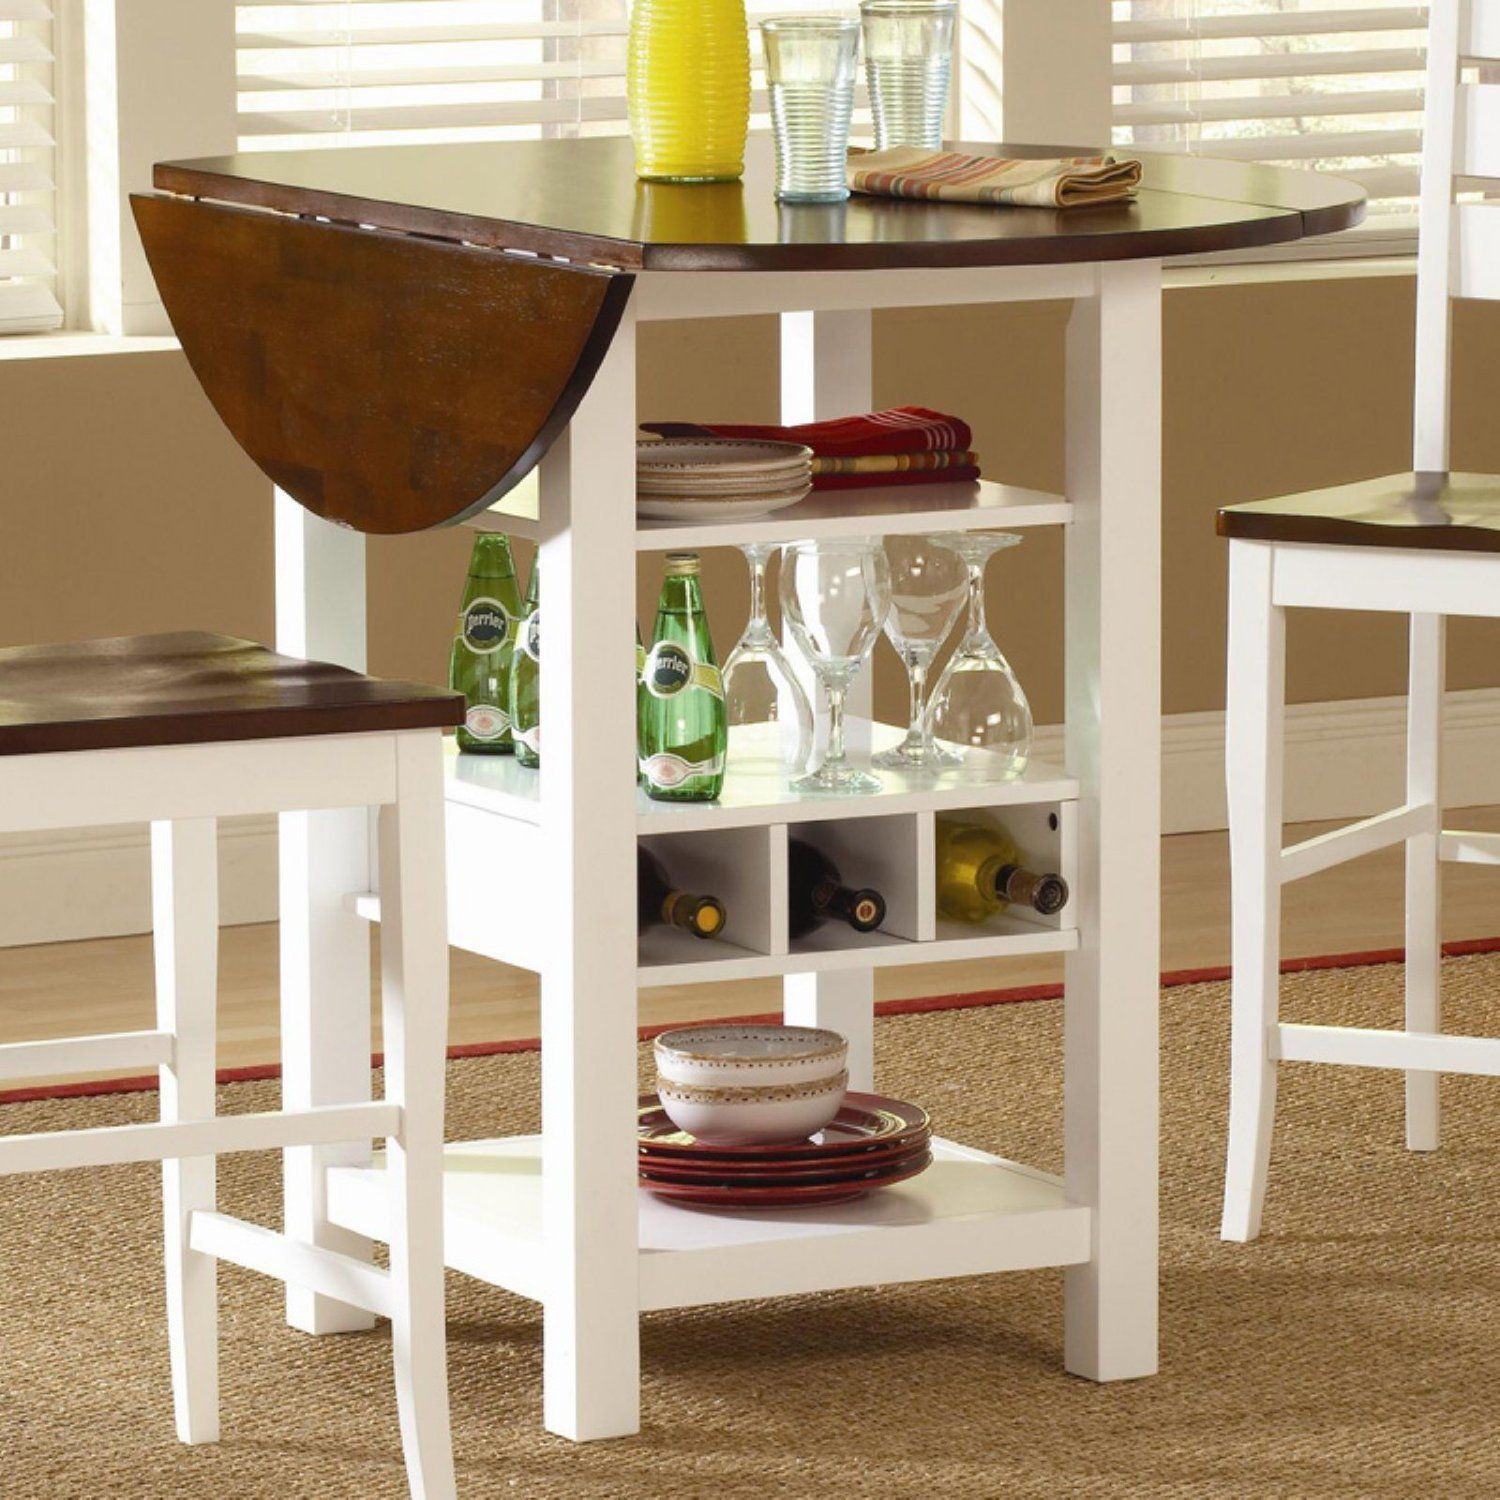 The Best Small Kitchen Table With Storage Underneath